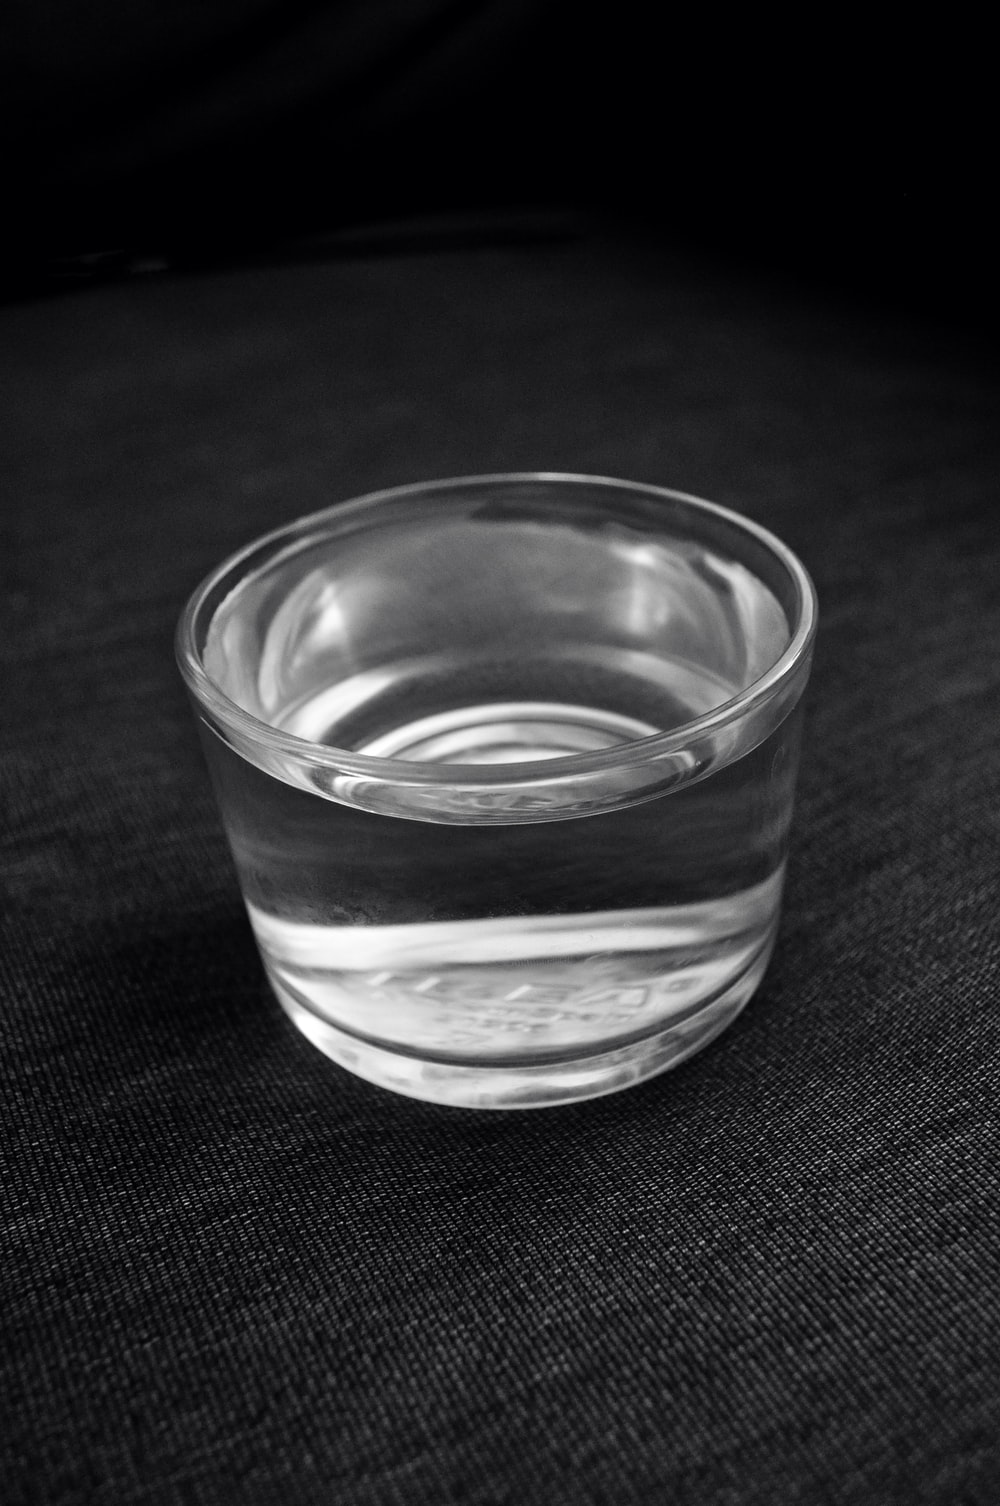 clear drinking glass on black textile